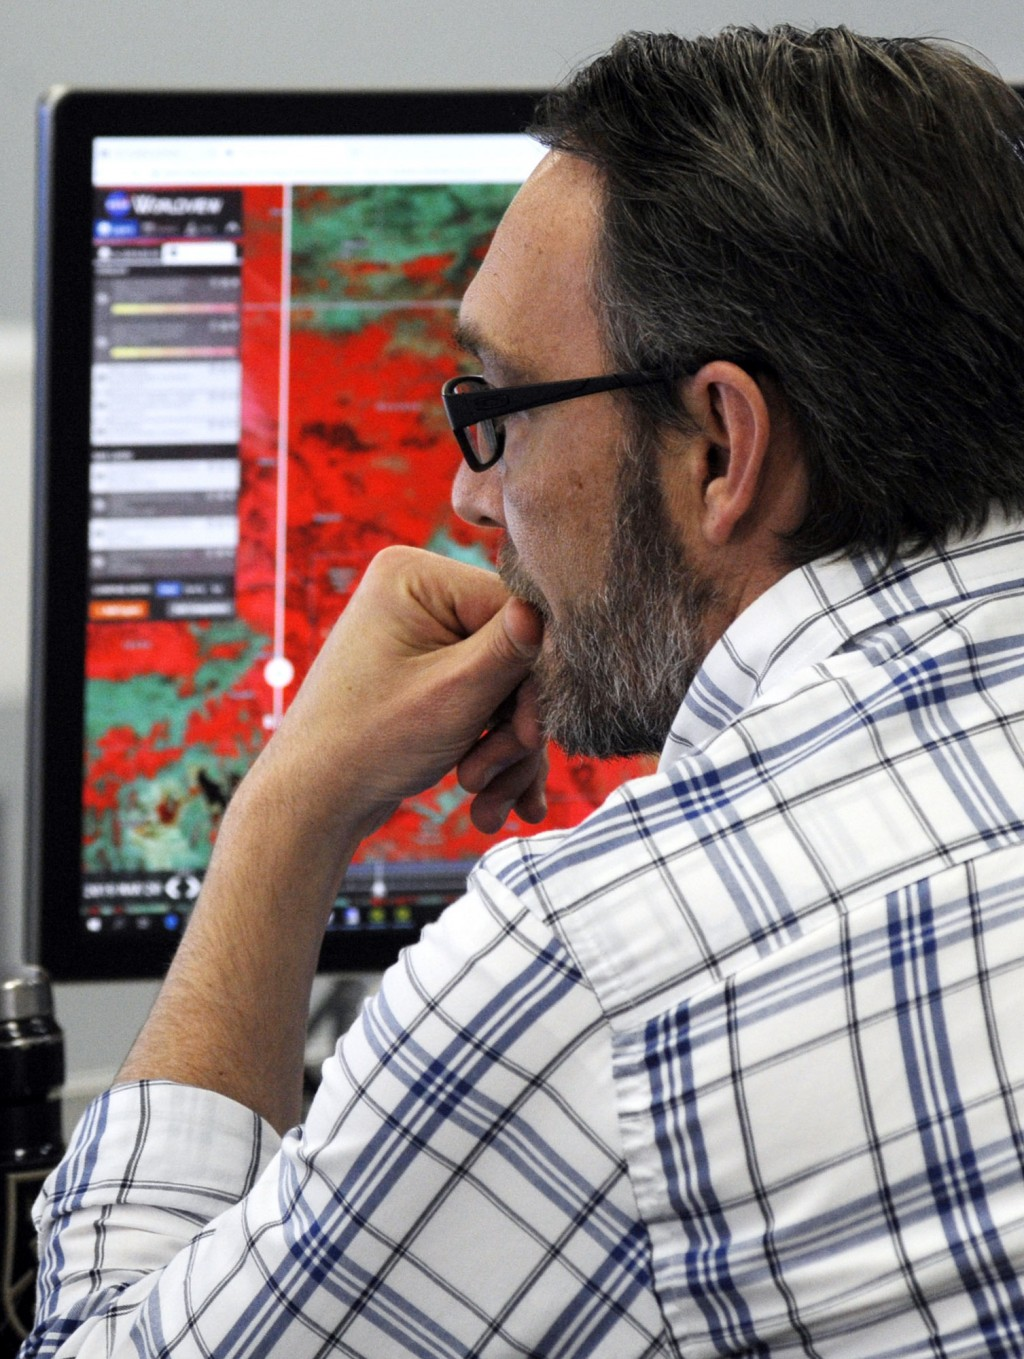 FILE - In this March 21, 2019 file photo, Shawn Carter, an associate scientist at the National Water Center in Tuscaloosa, Ala., works on computer scr...